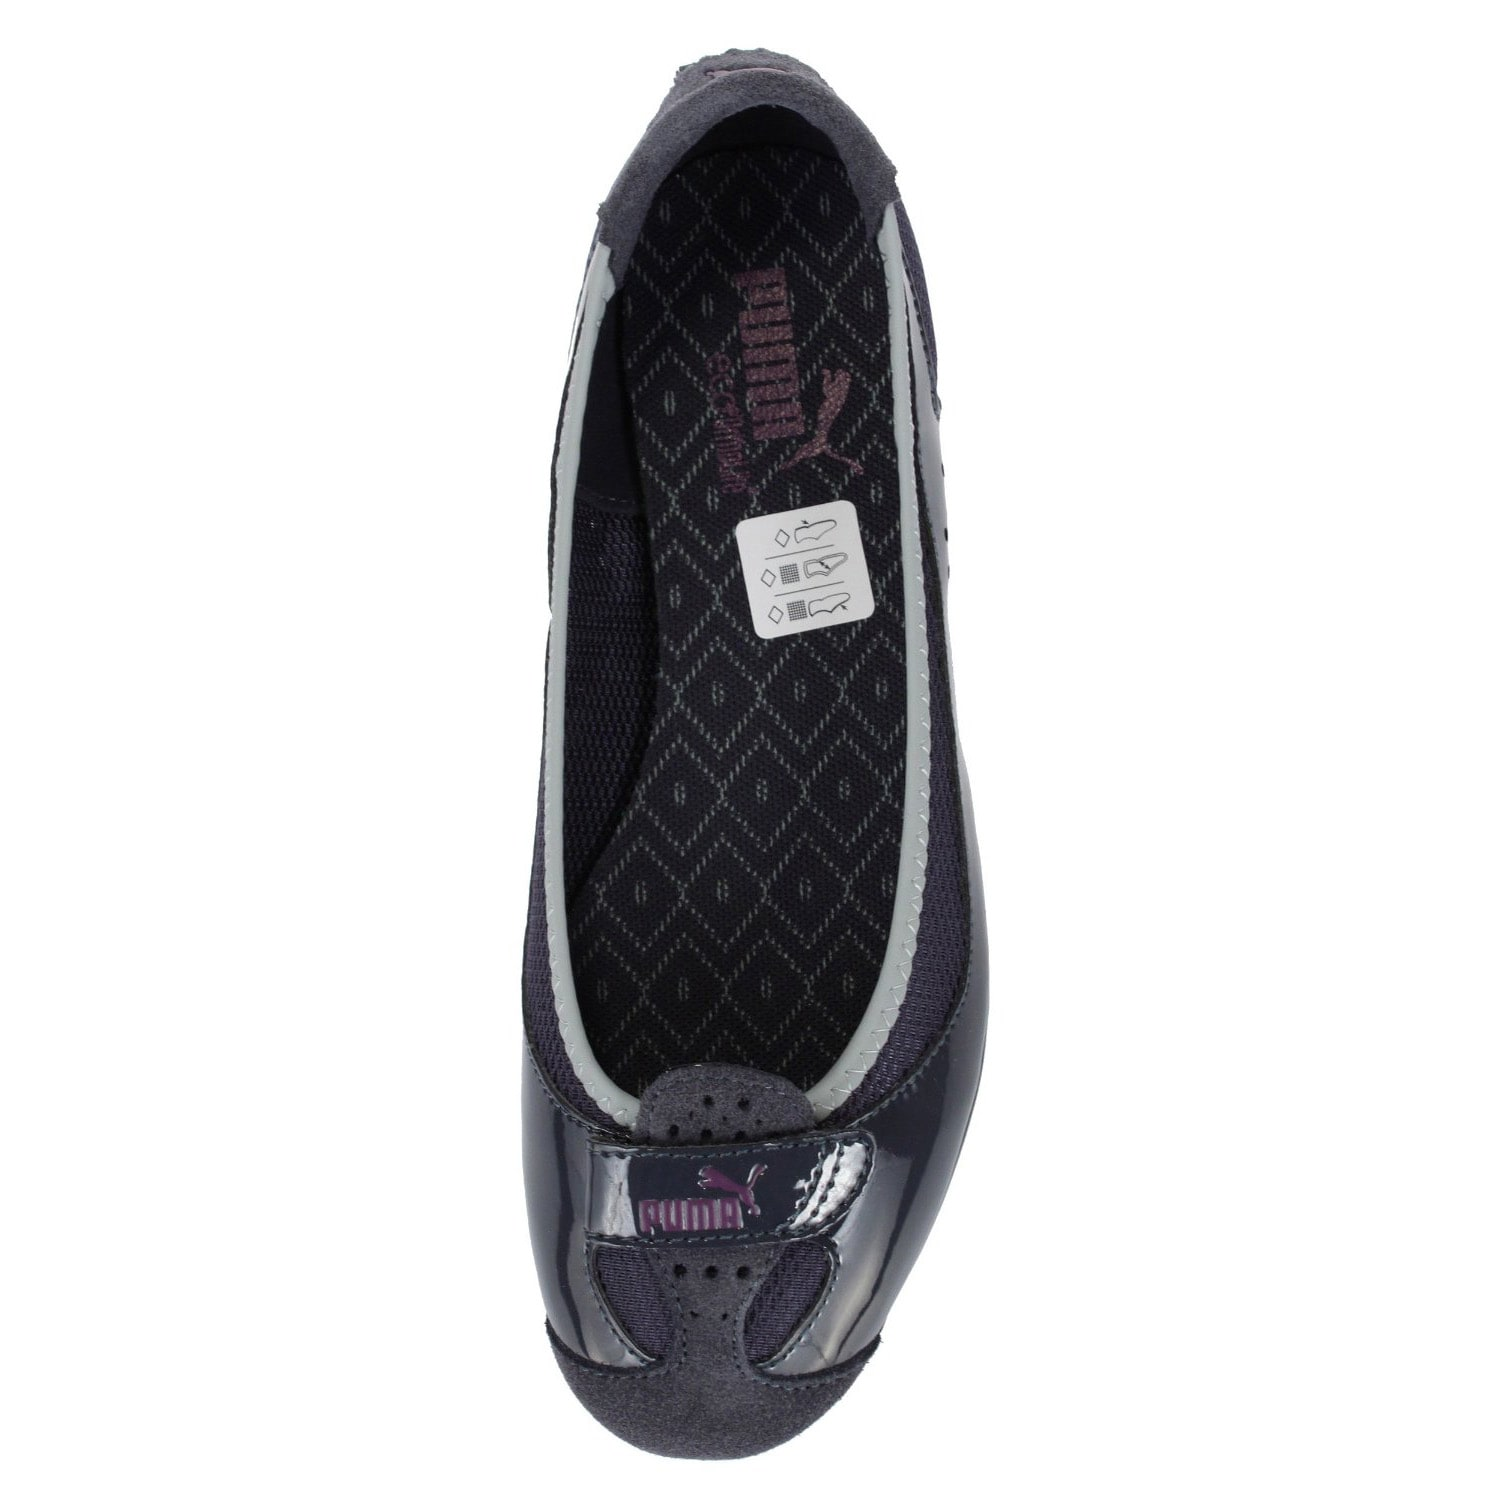 Shop Puma Women s  Zandy Native  Leather and Mesh Socklined Sporty Flats -  Free Shipping Today - Overstock - 7831710 8bdfaa732